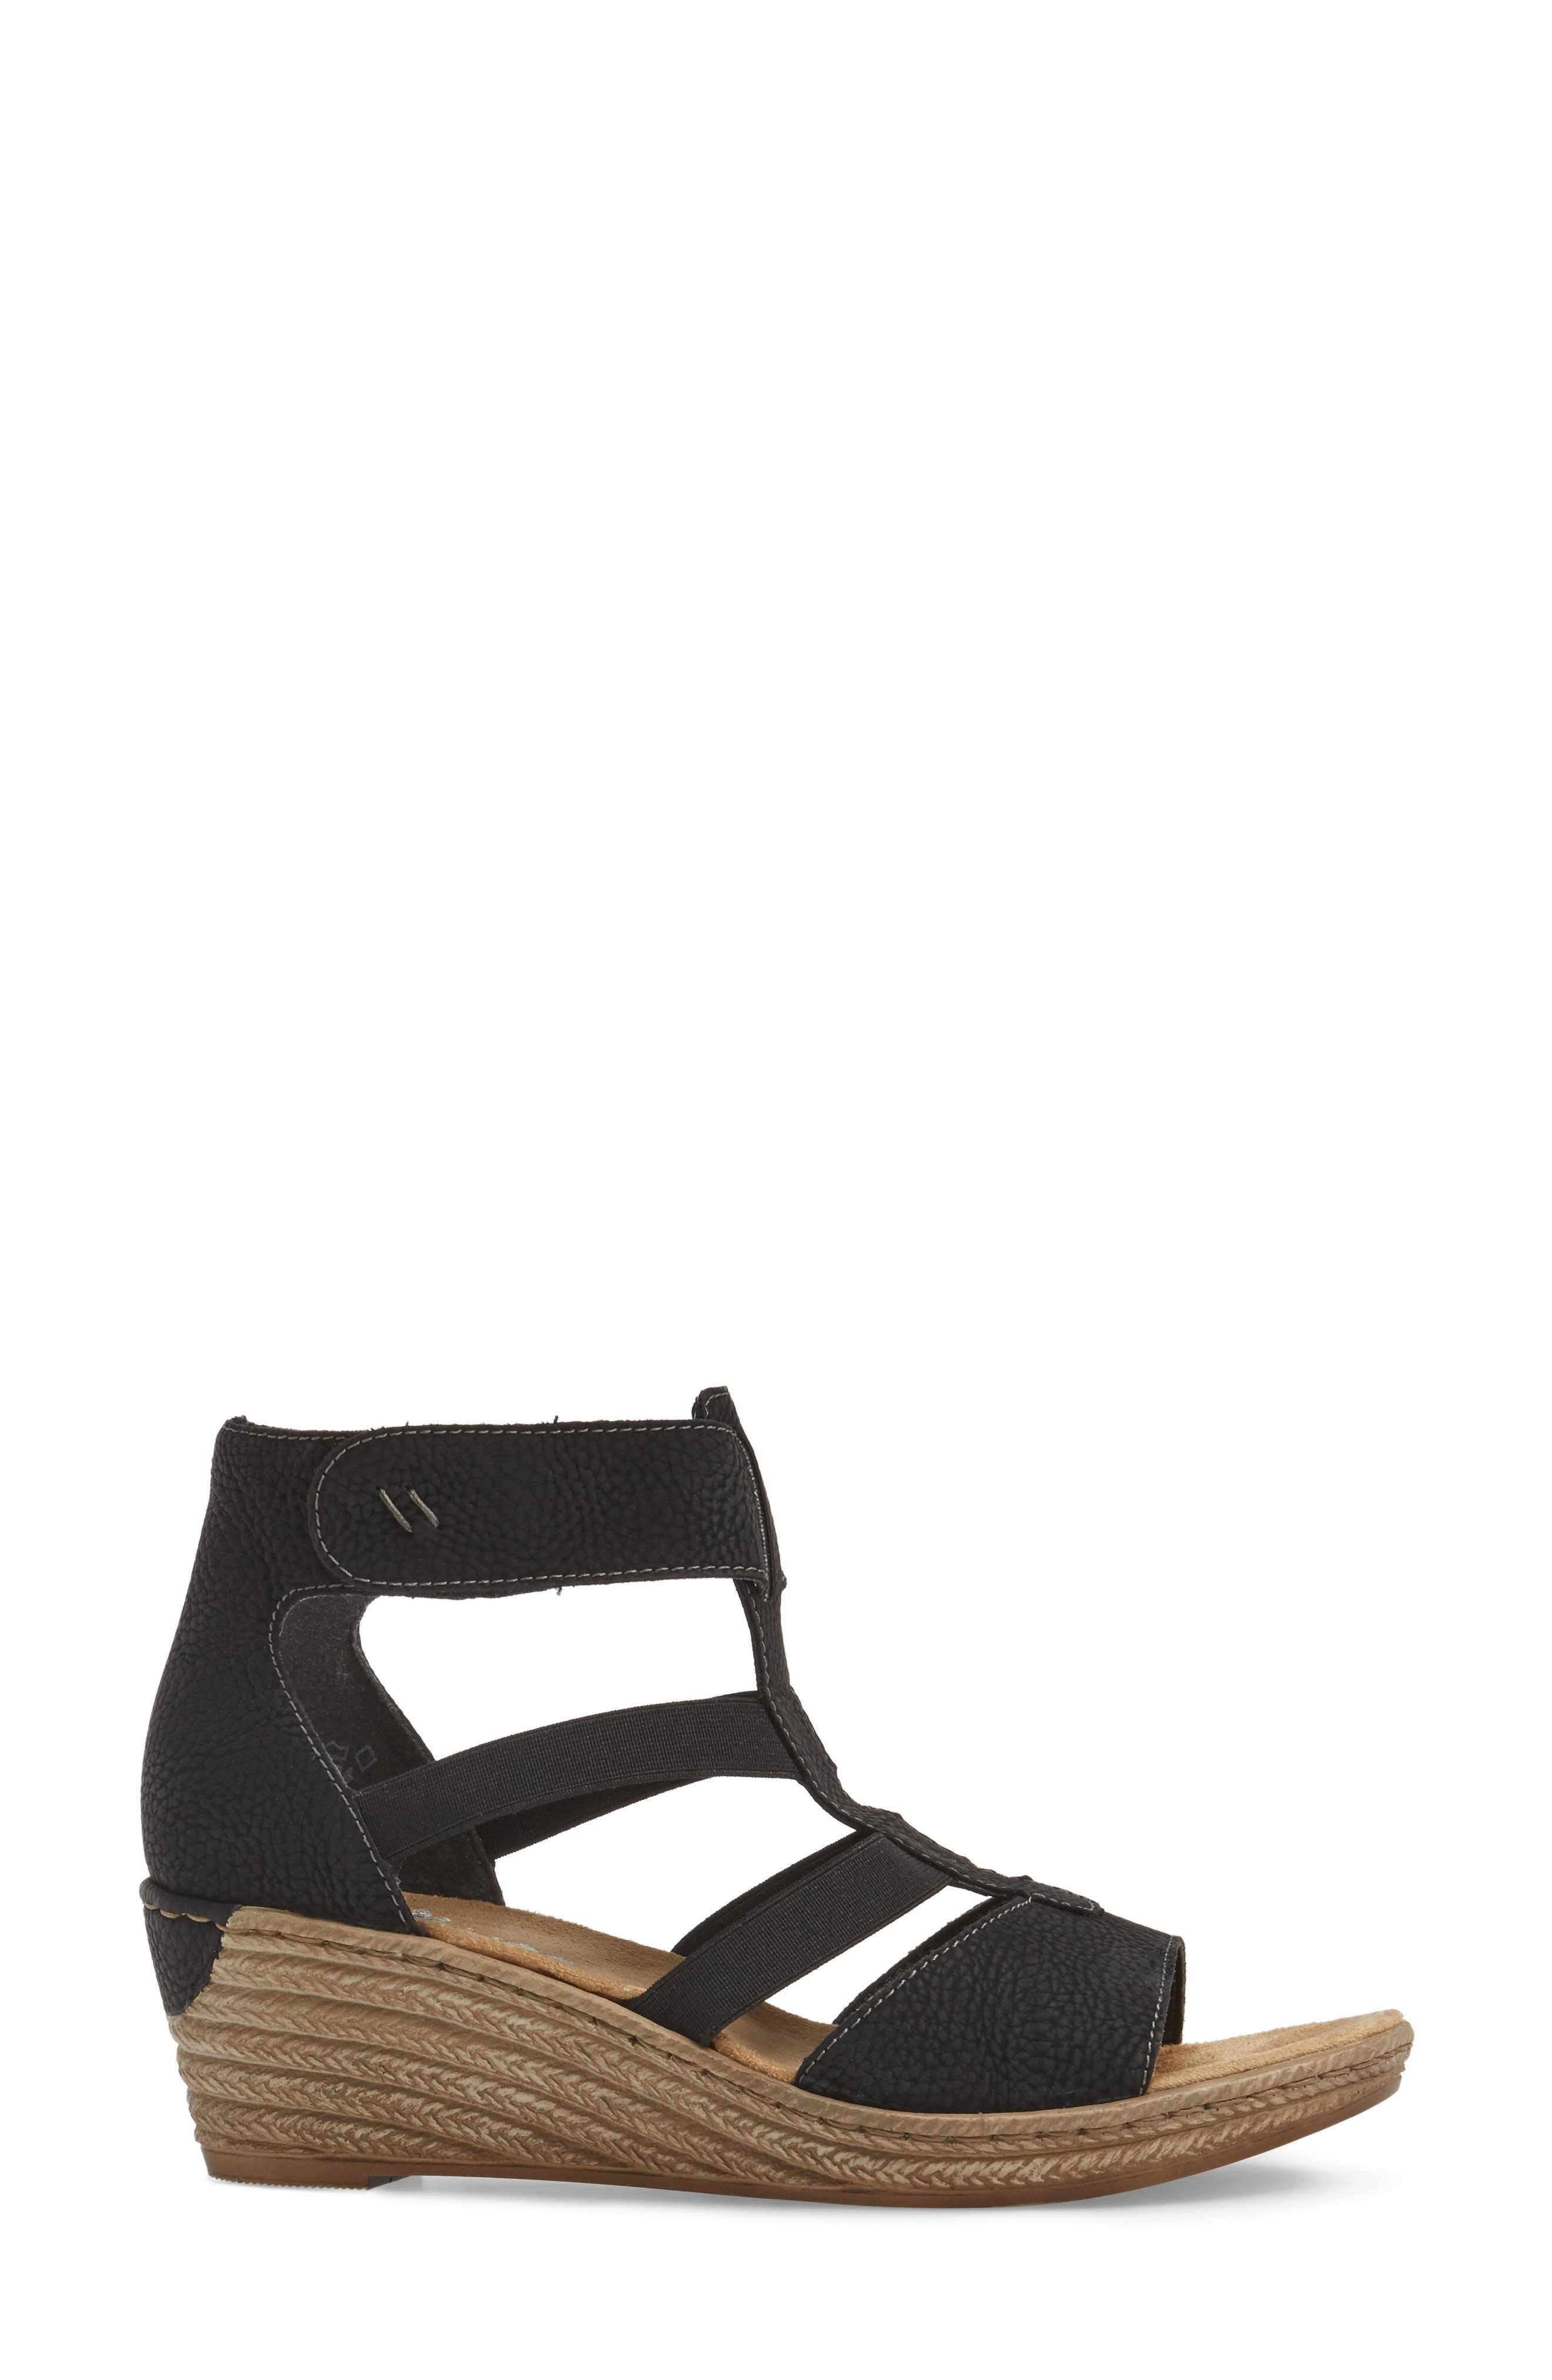 Alternate Image 3  - Rieker Antistress Fanni 39 Wedge Sandal (Women)